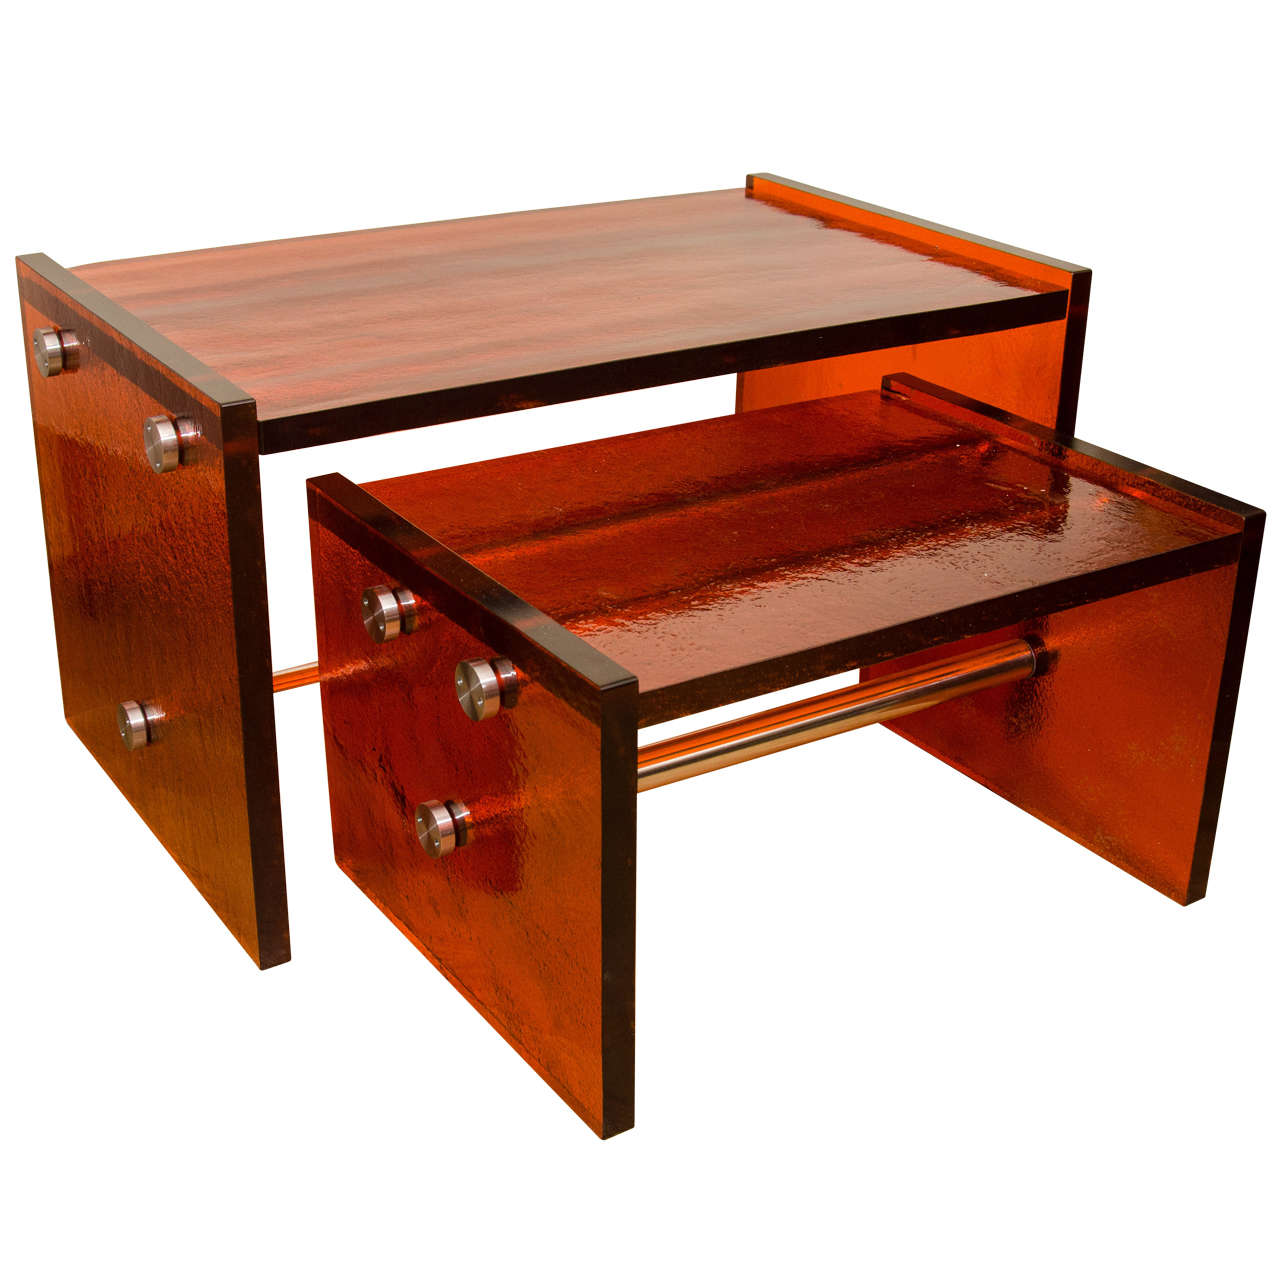 Pair of Rectangular Orange Glass Nesting Tables with Nickel Details